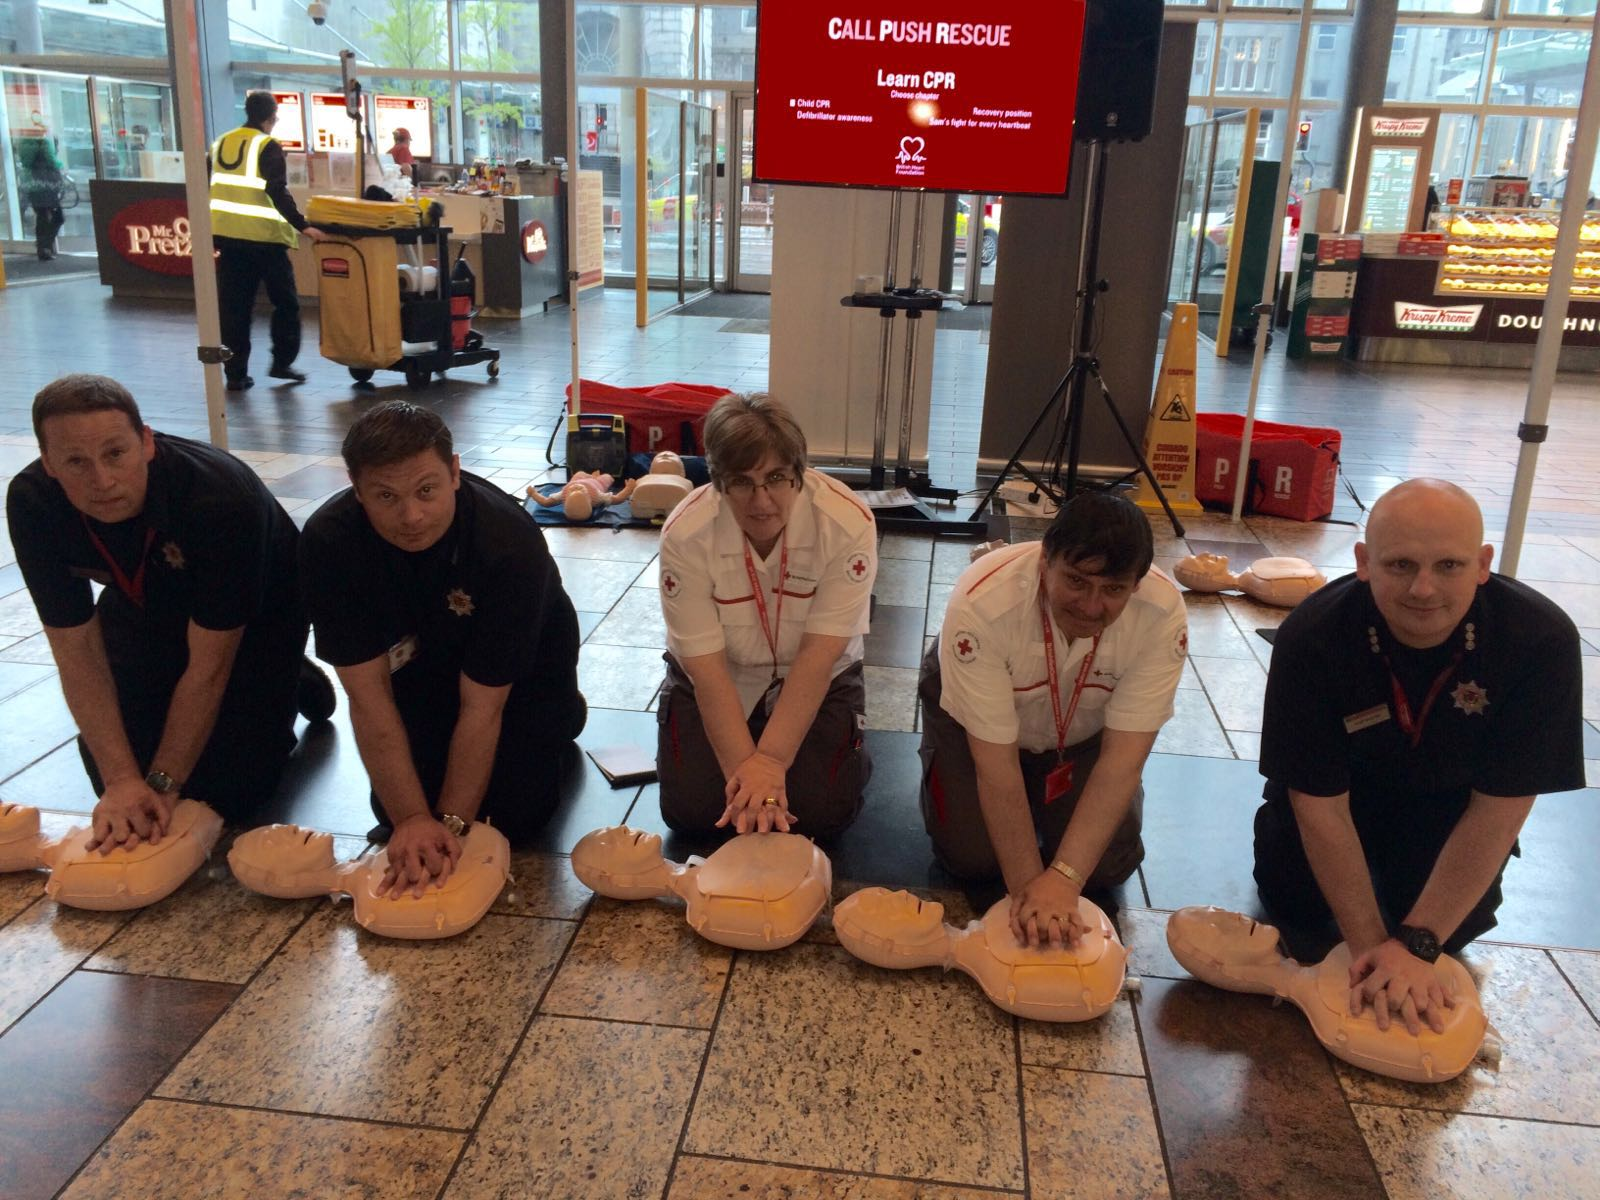 Aberdeen firefighters help train almost 350 potential lifesavers in CPR